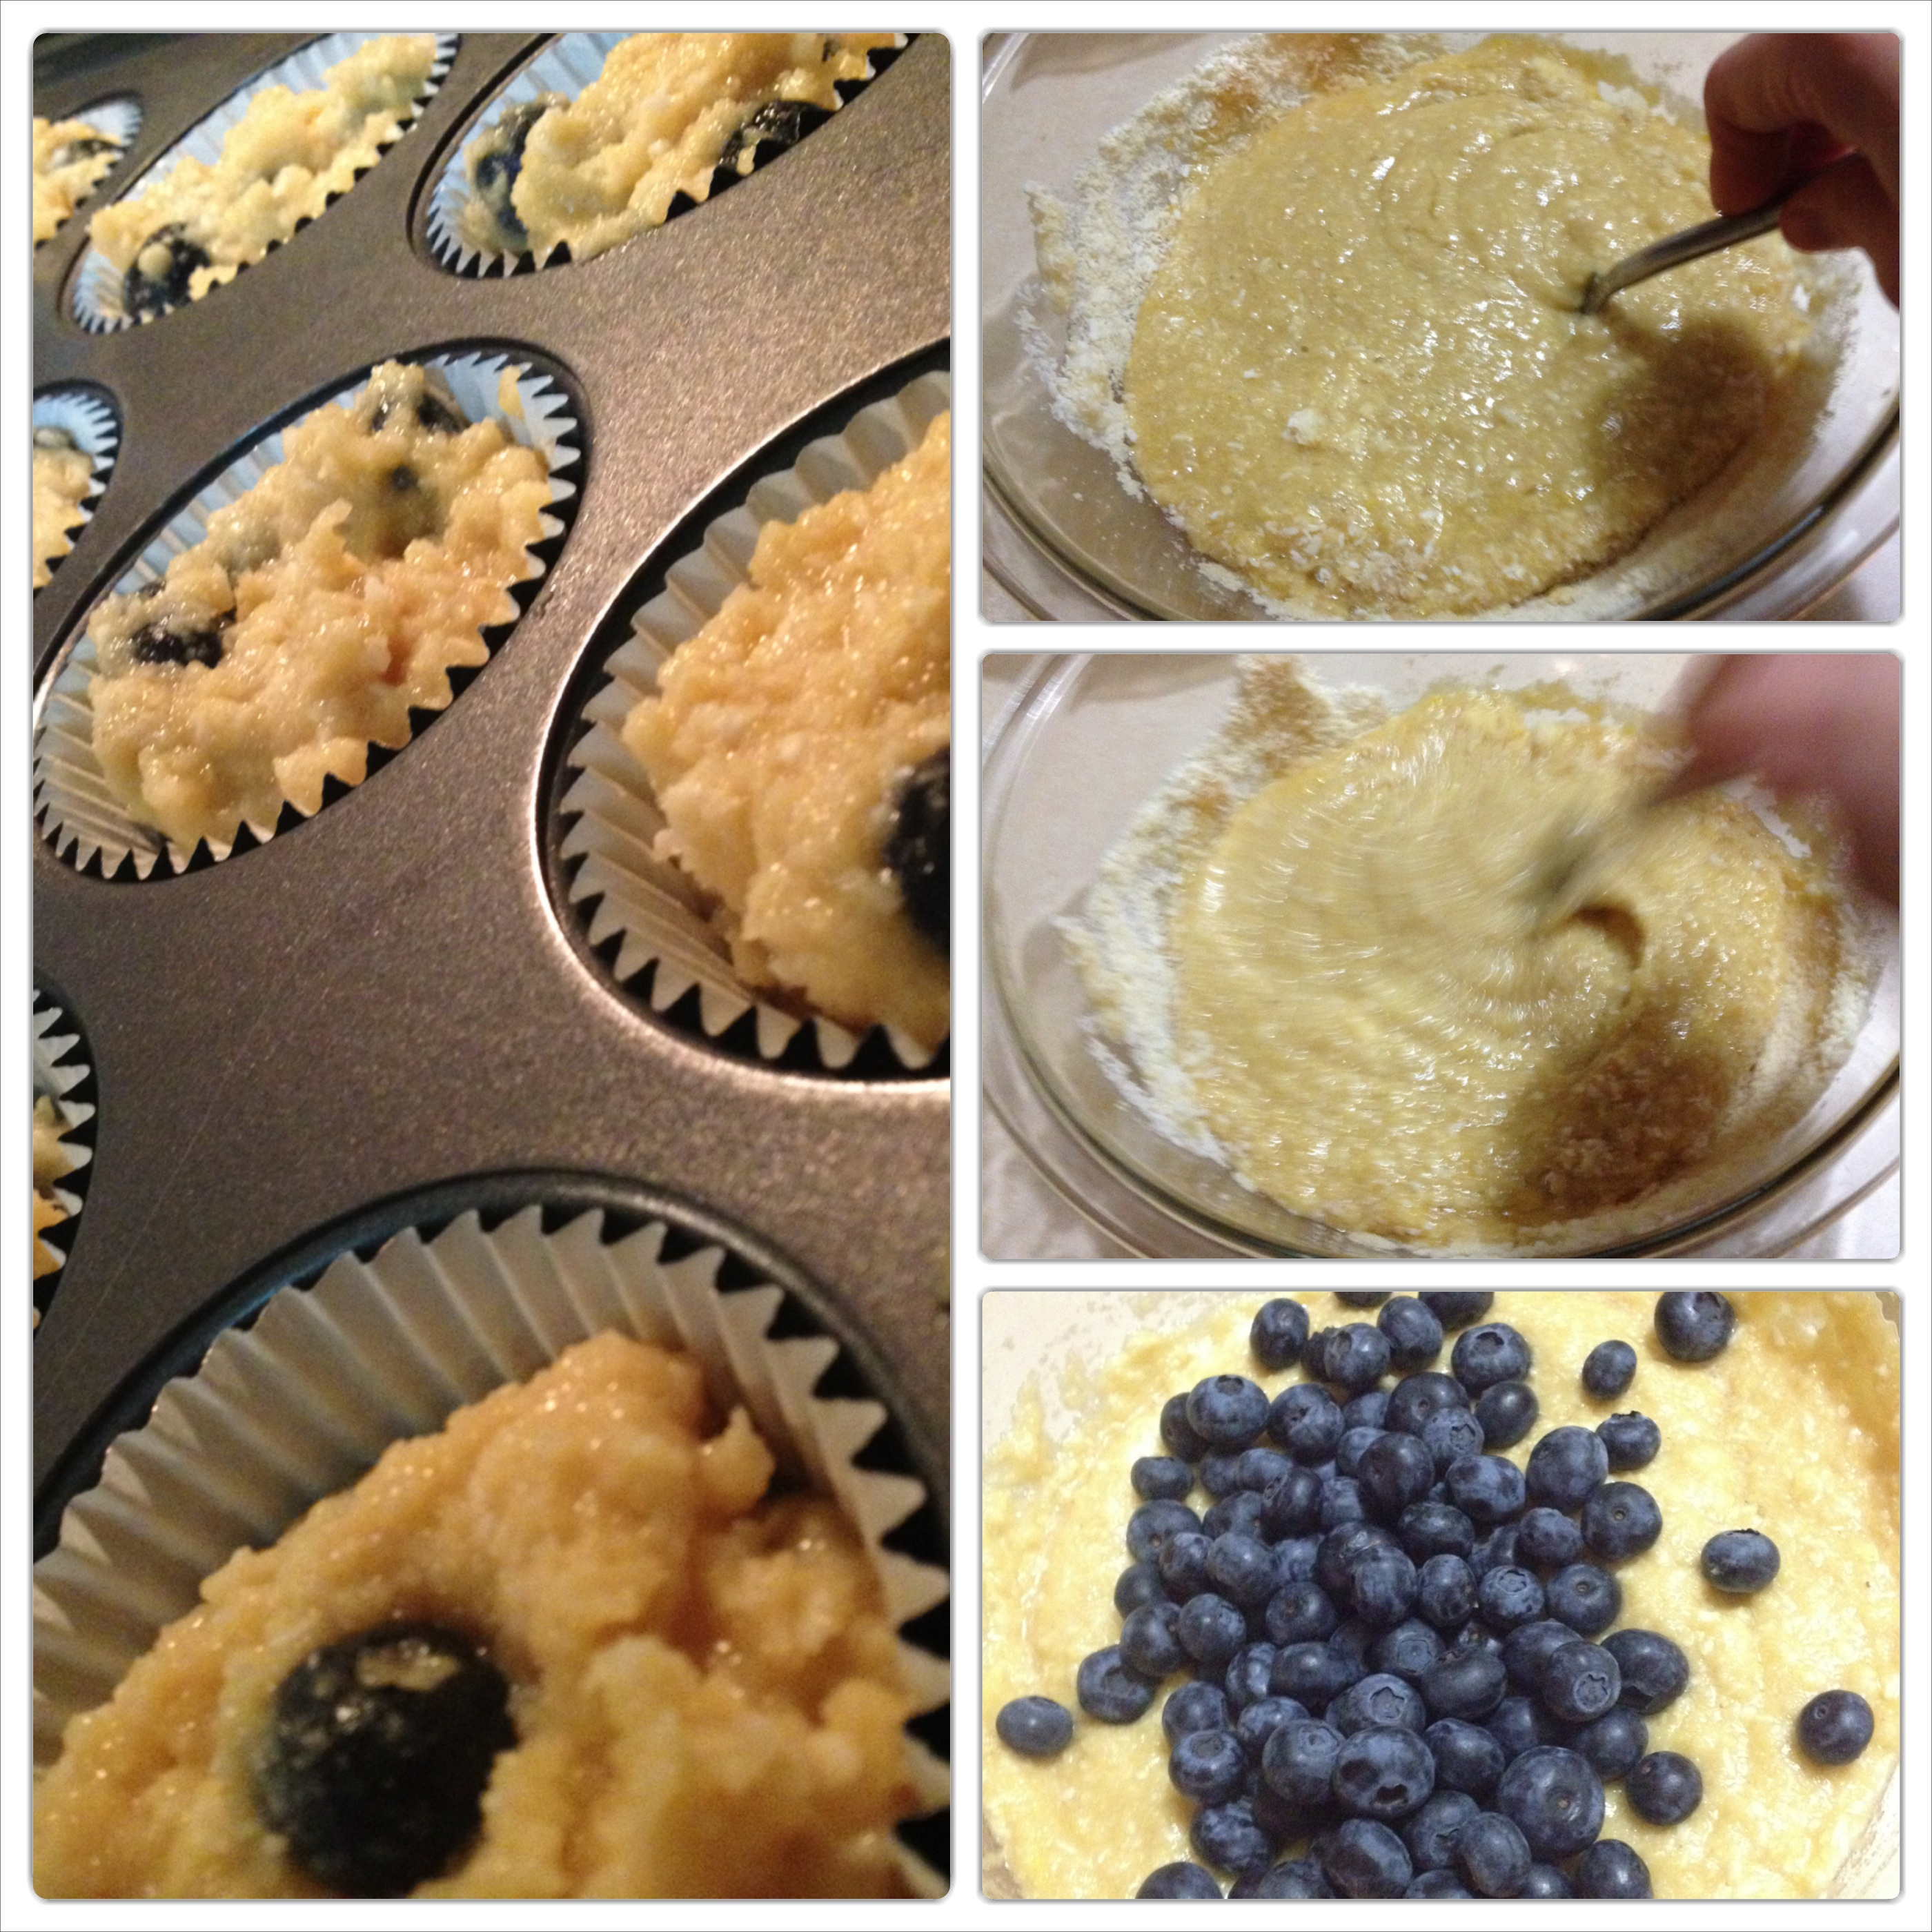 Got 10 minutes? Let's make some Blueberry-Coconut Muffins ...